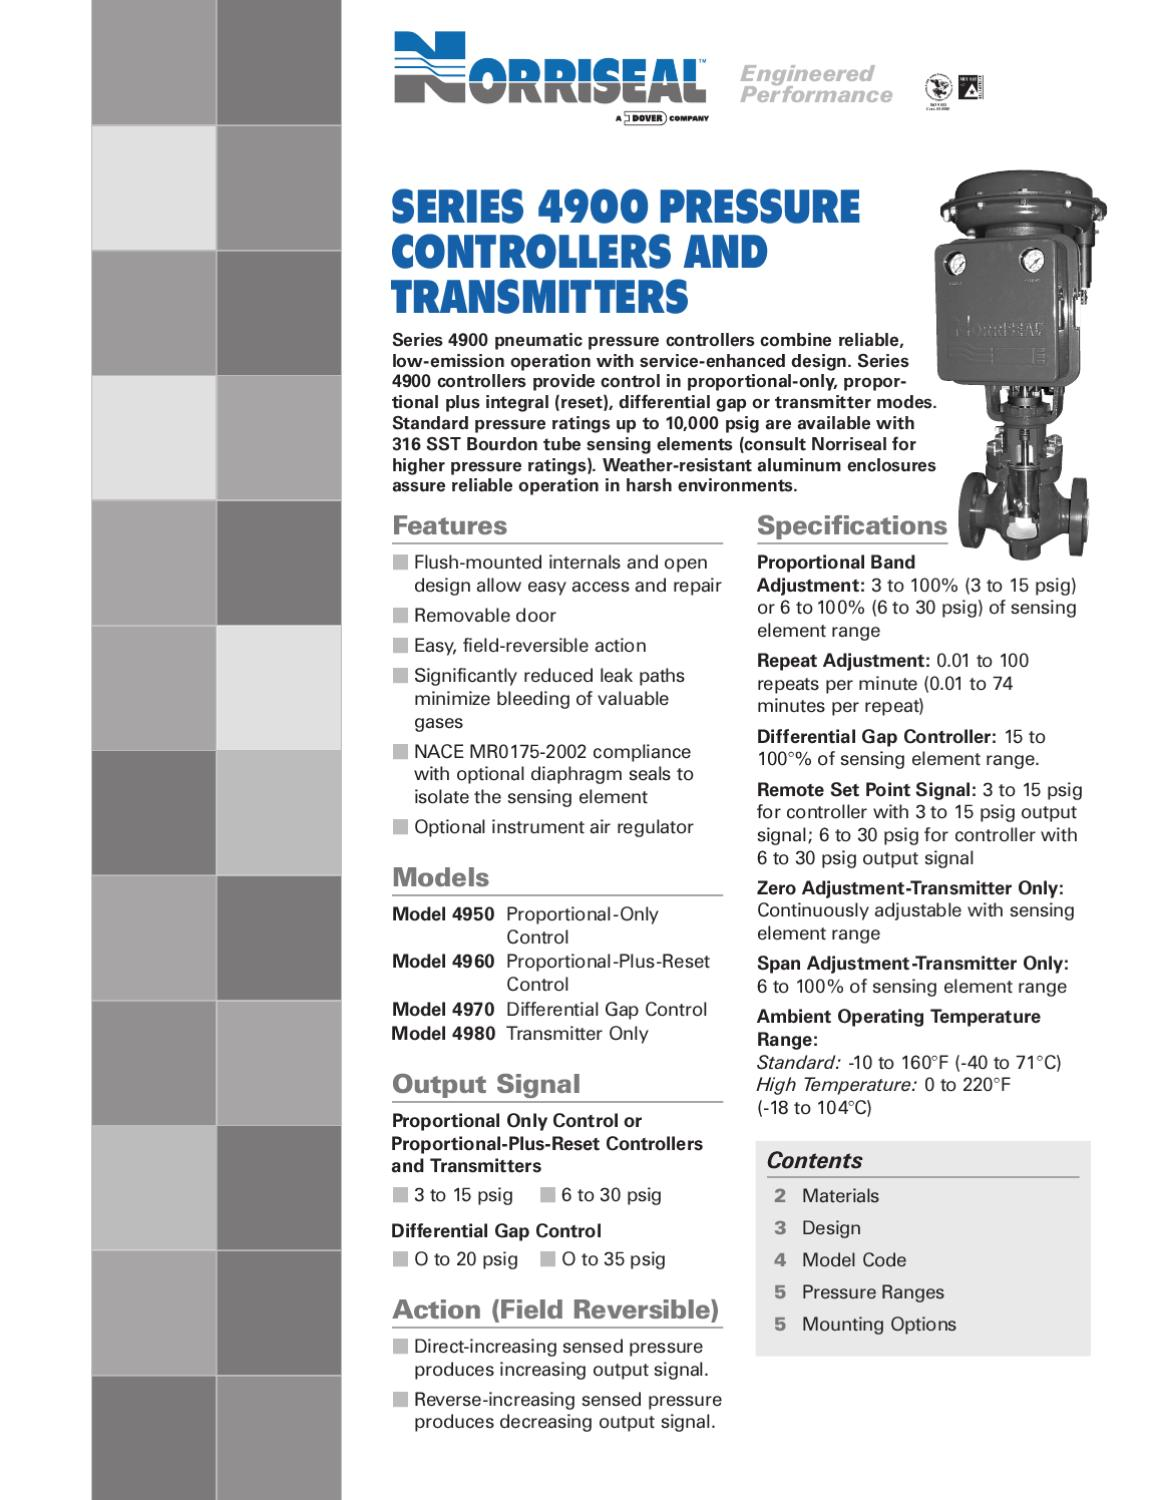 4900 Brochure By RMC Process Controls Filtration Inc